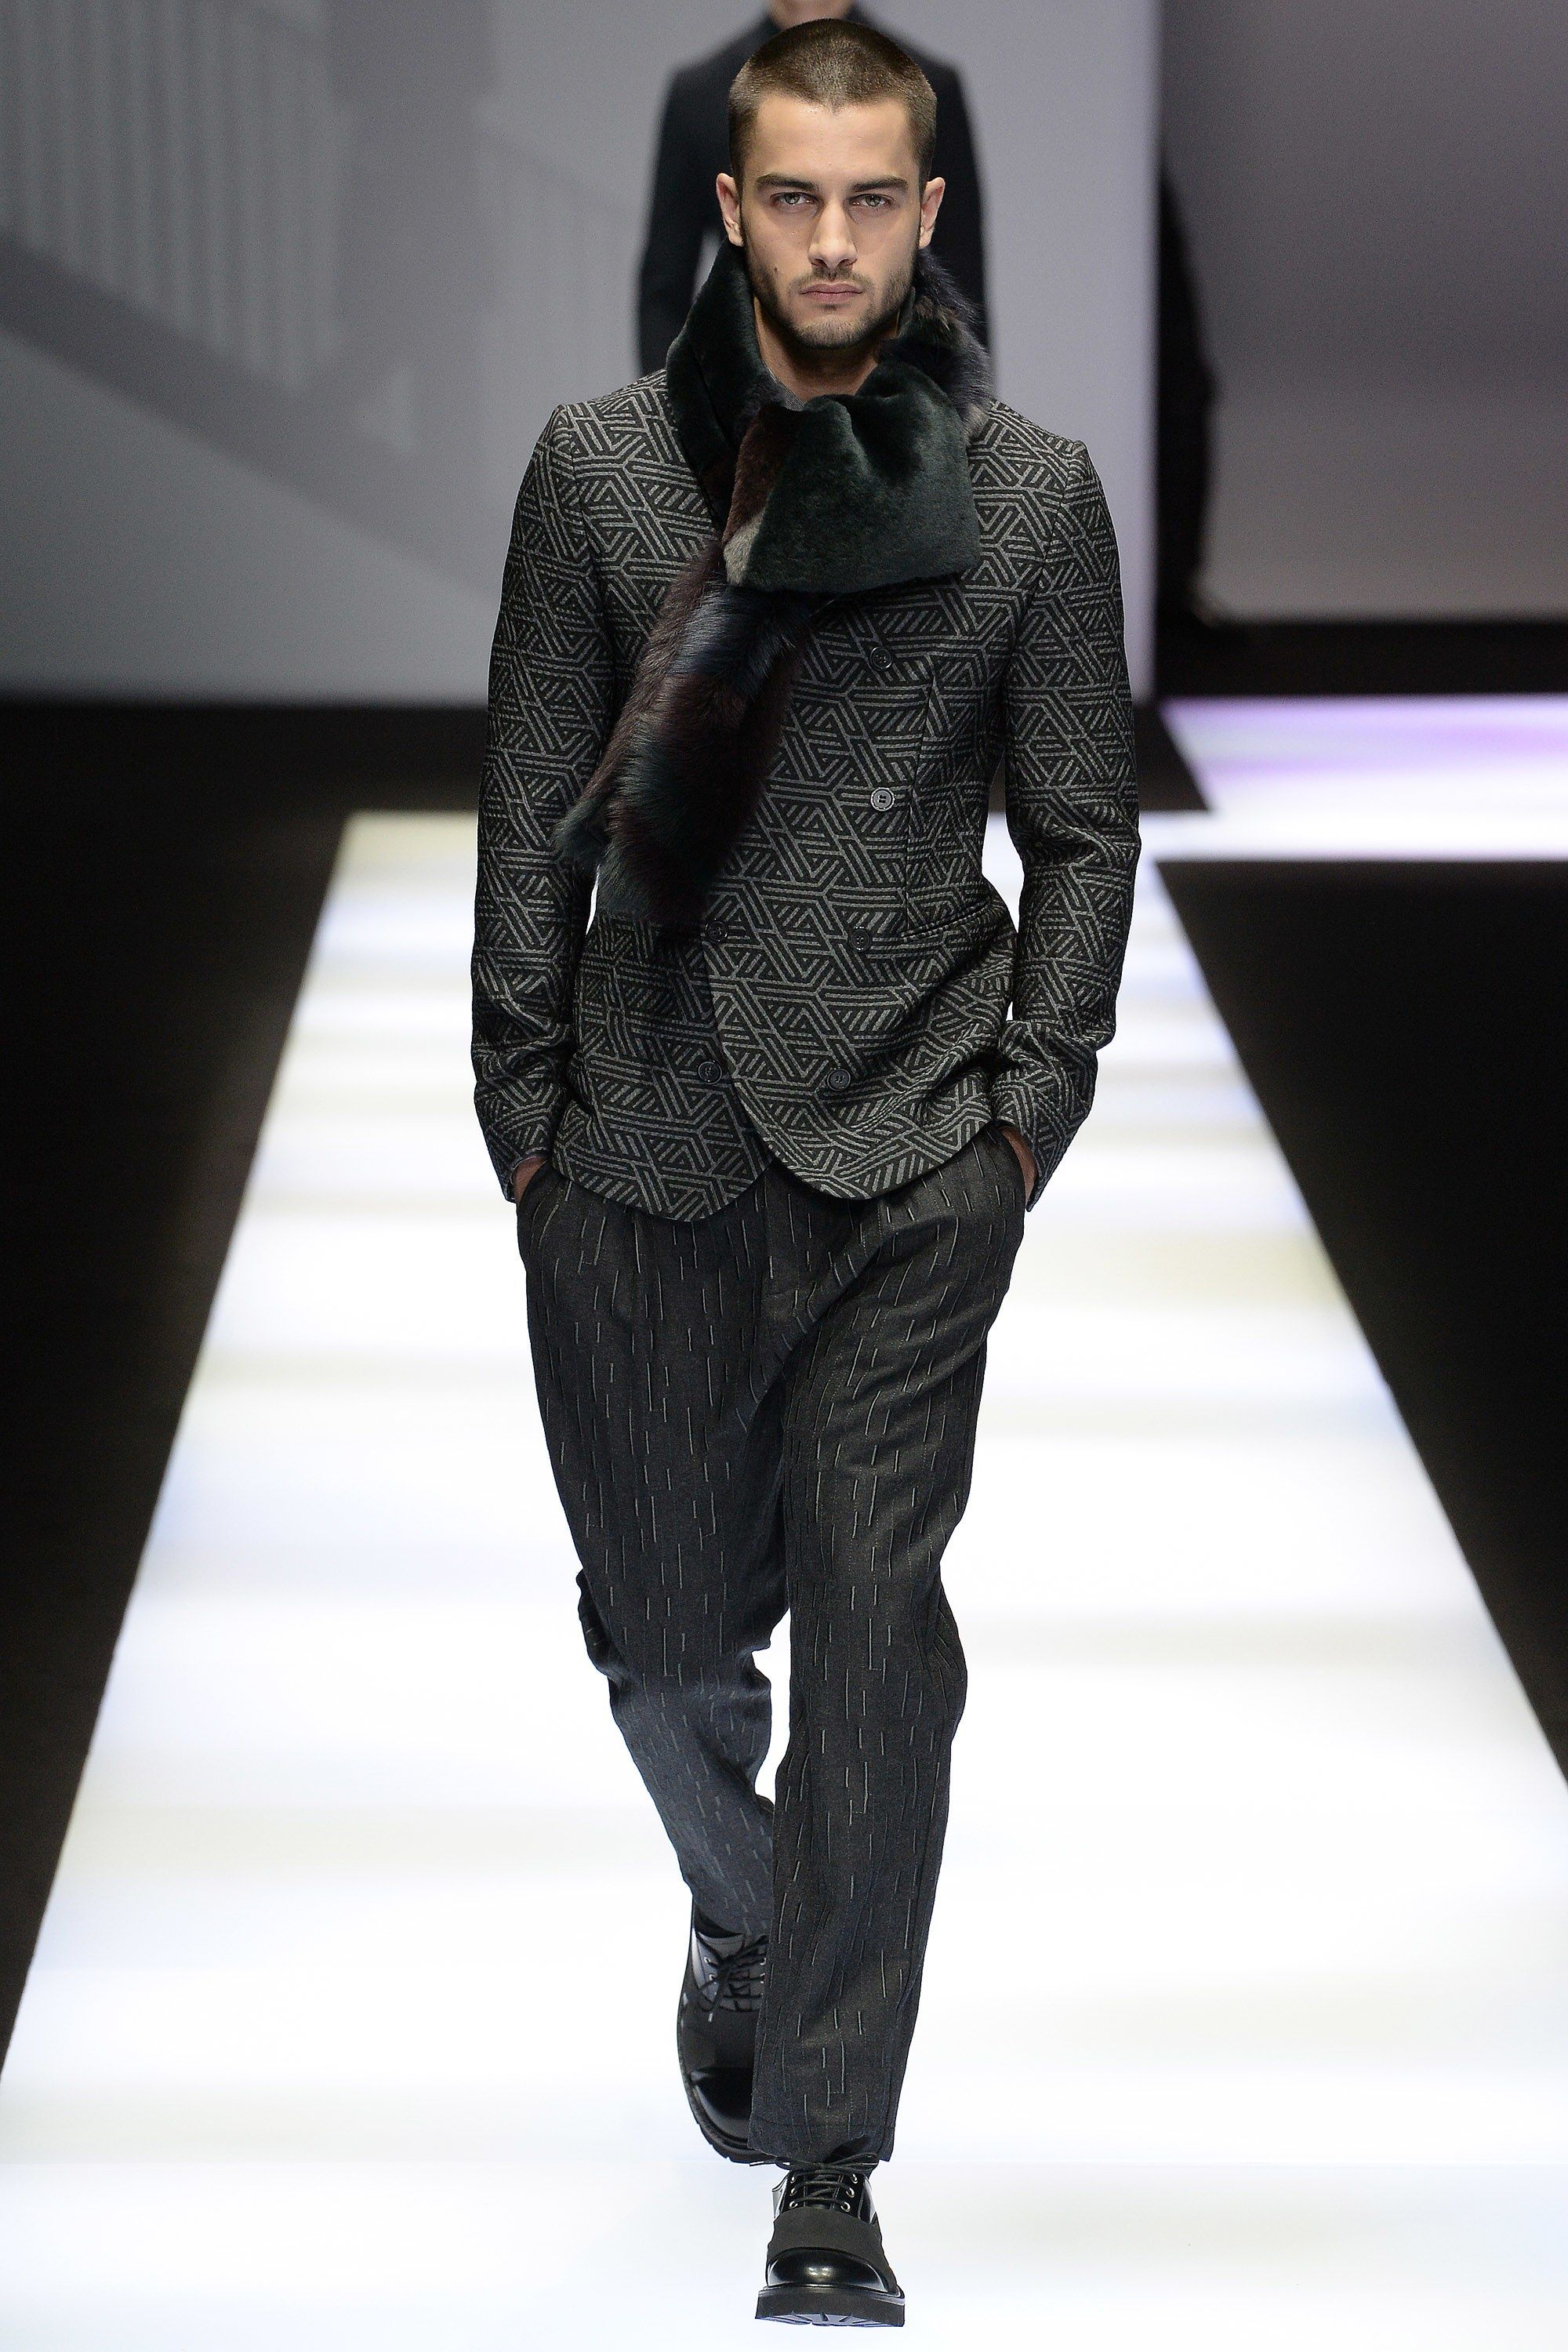 7d03a7d86c9f Emporio Armani Fall 2017 Menswear Fashion Show in 2018   Fashion man ...